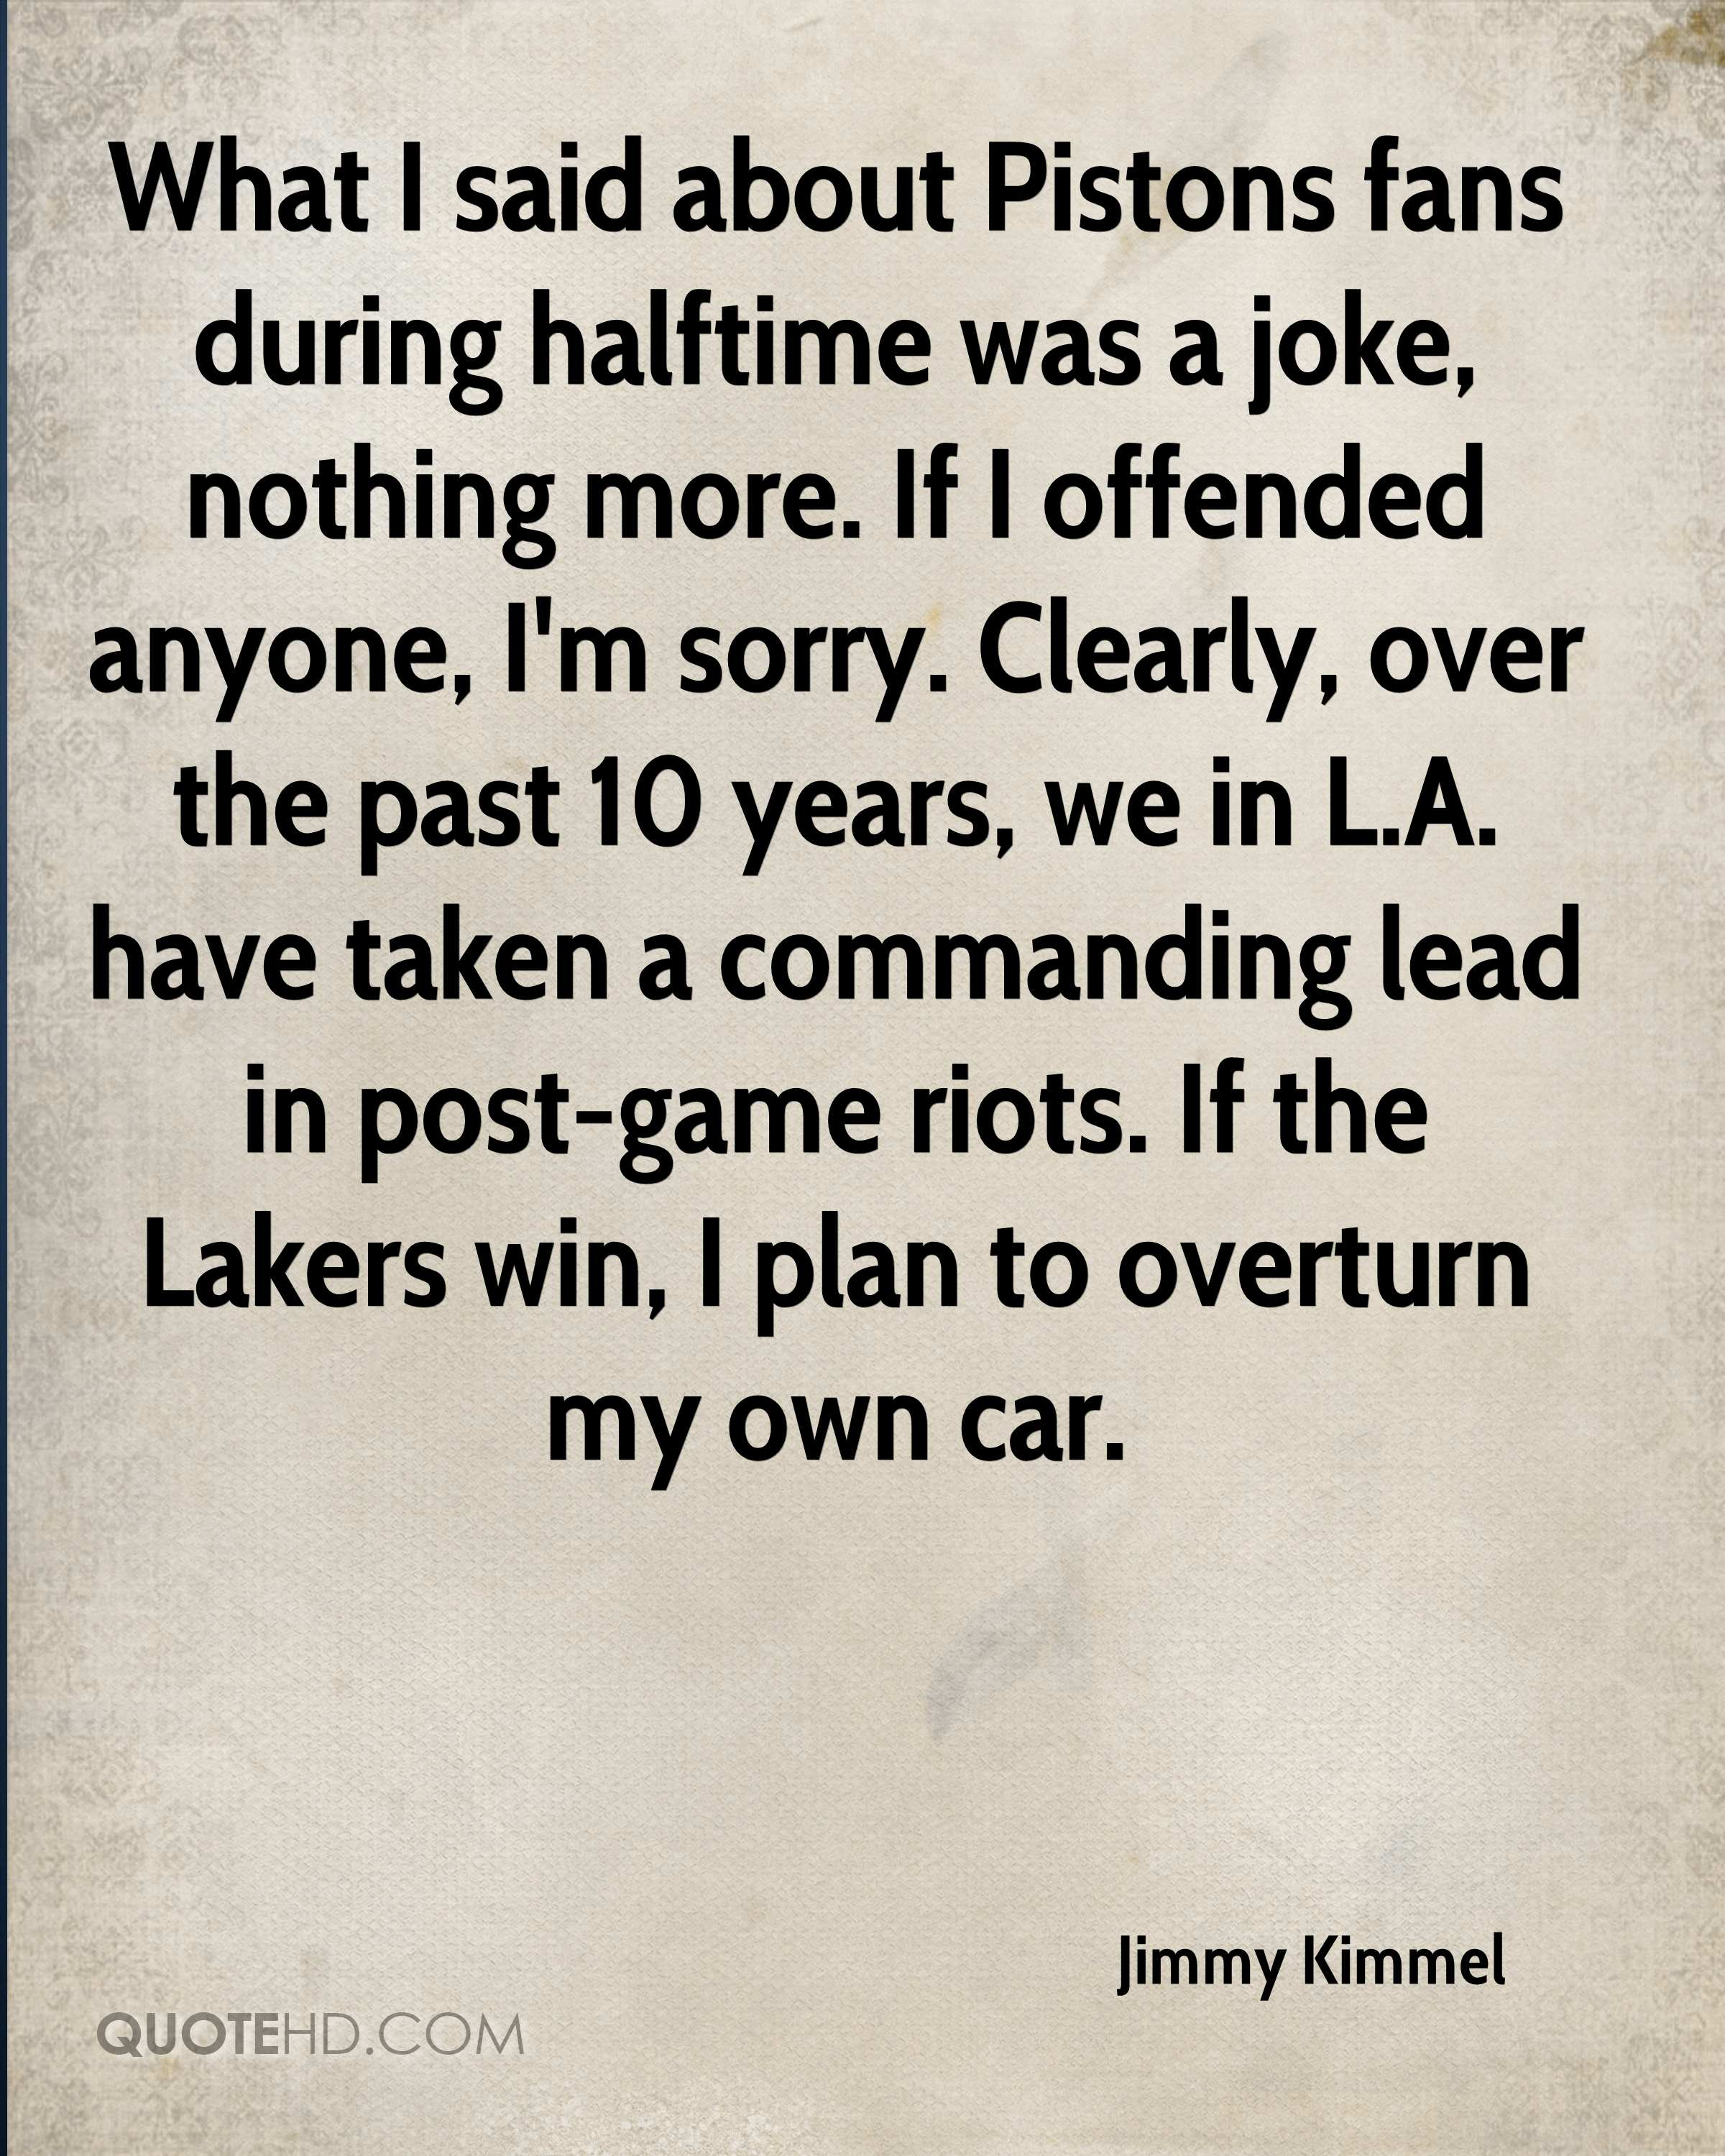 What I said about Pistons fans during halftime was a joke, nothing more. If I offended anyone, I'm sorry. Clearly, over the past 10 years, we in L.A. have taken a commanding lead in post-game riots. If the Lakers win, I plan to overturn my own car.